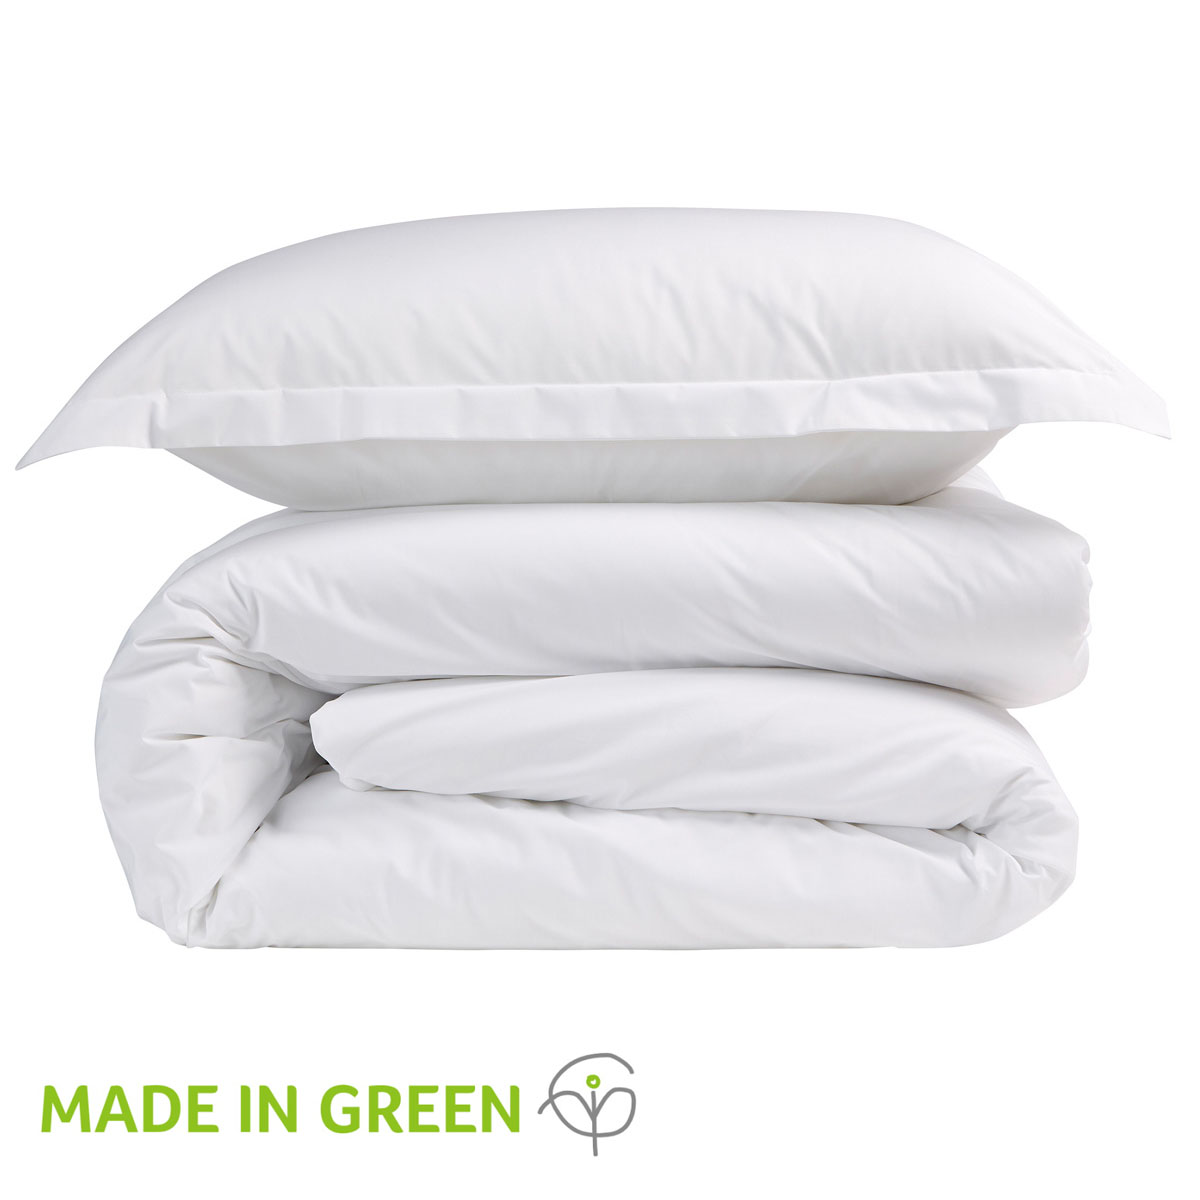 An image of 200 Easycare Double Fitted Sheet White